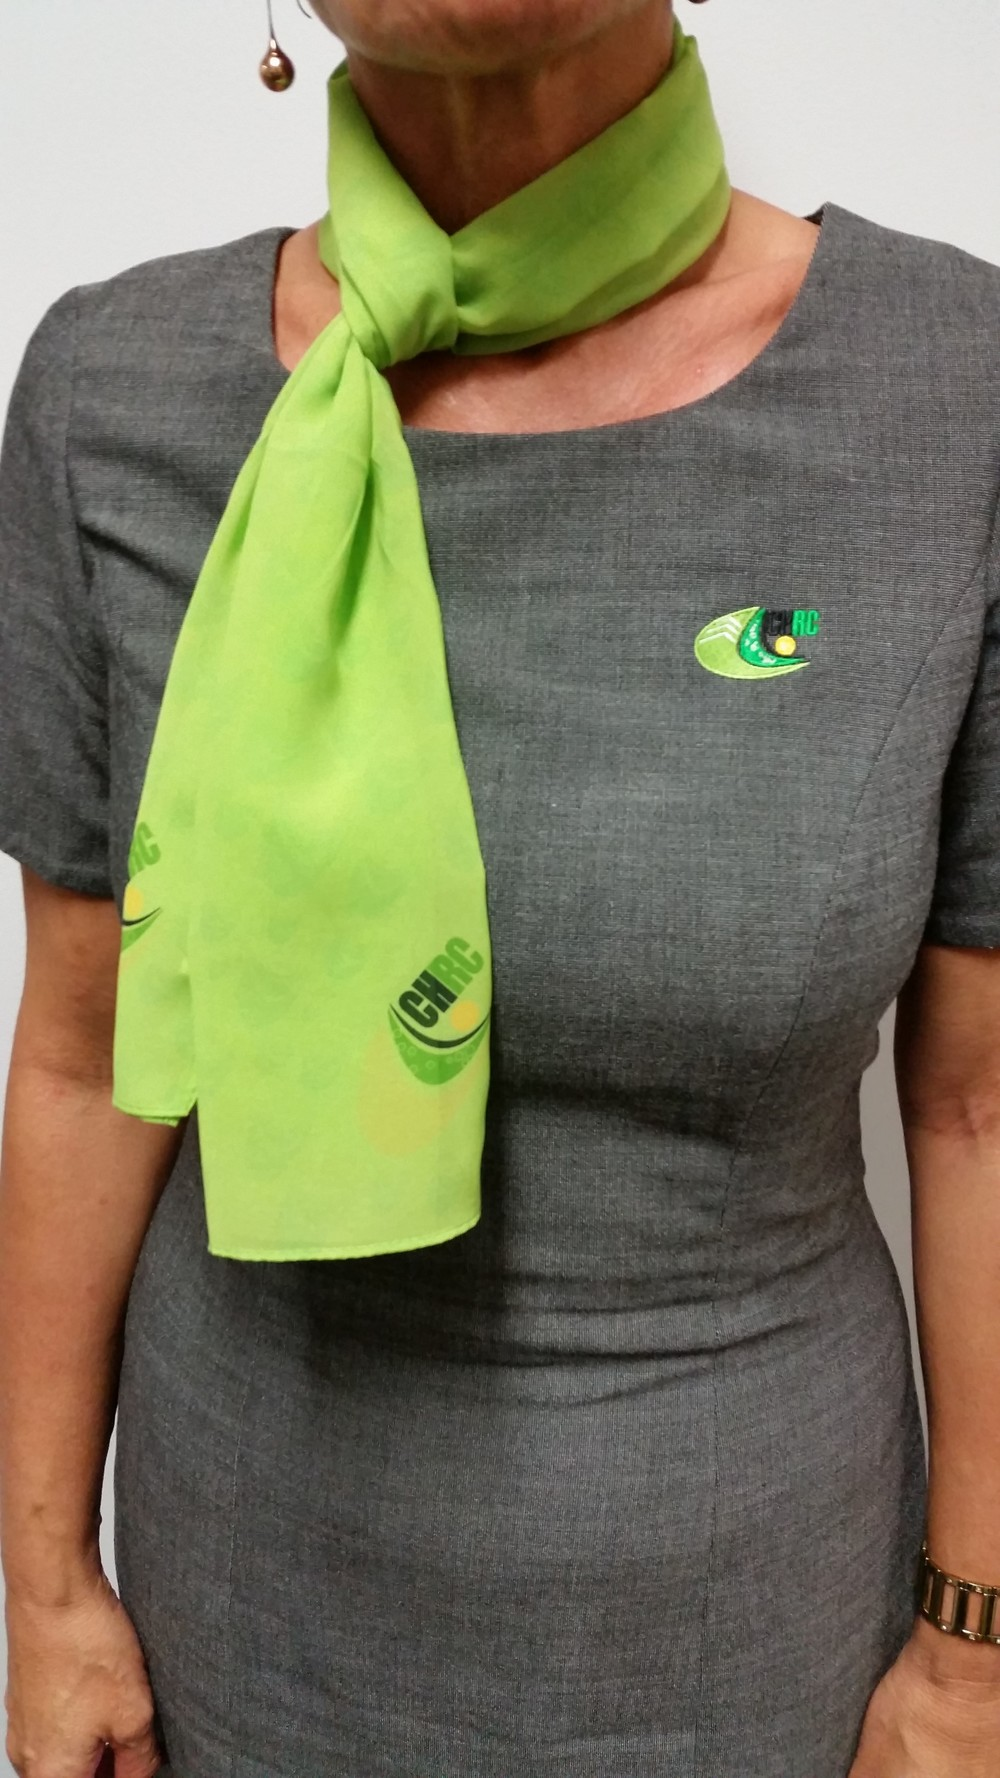 LADIES CHRC SCARFi LIME GREEN $22.70    SIZES : ONE SIZE FITS ALL